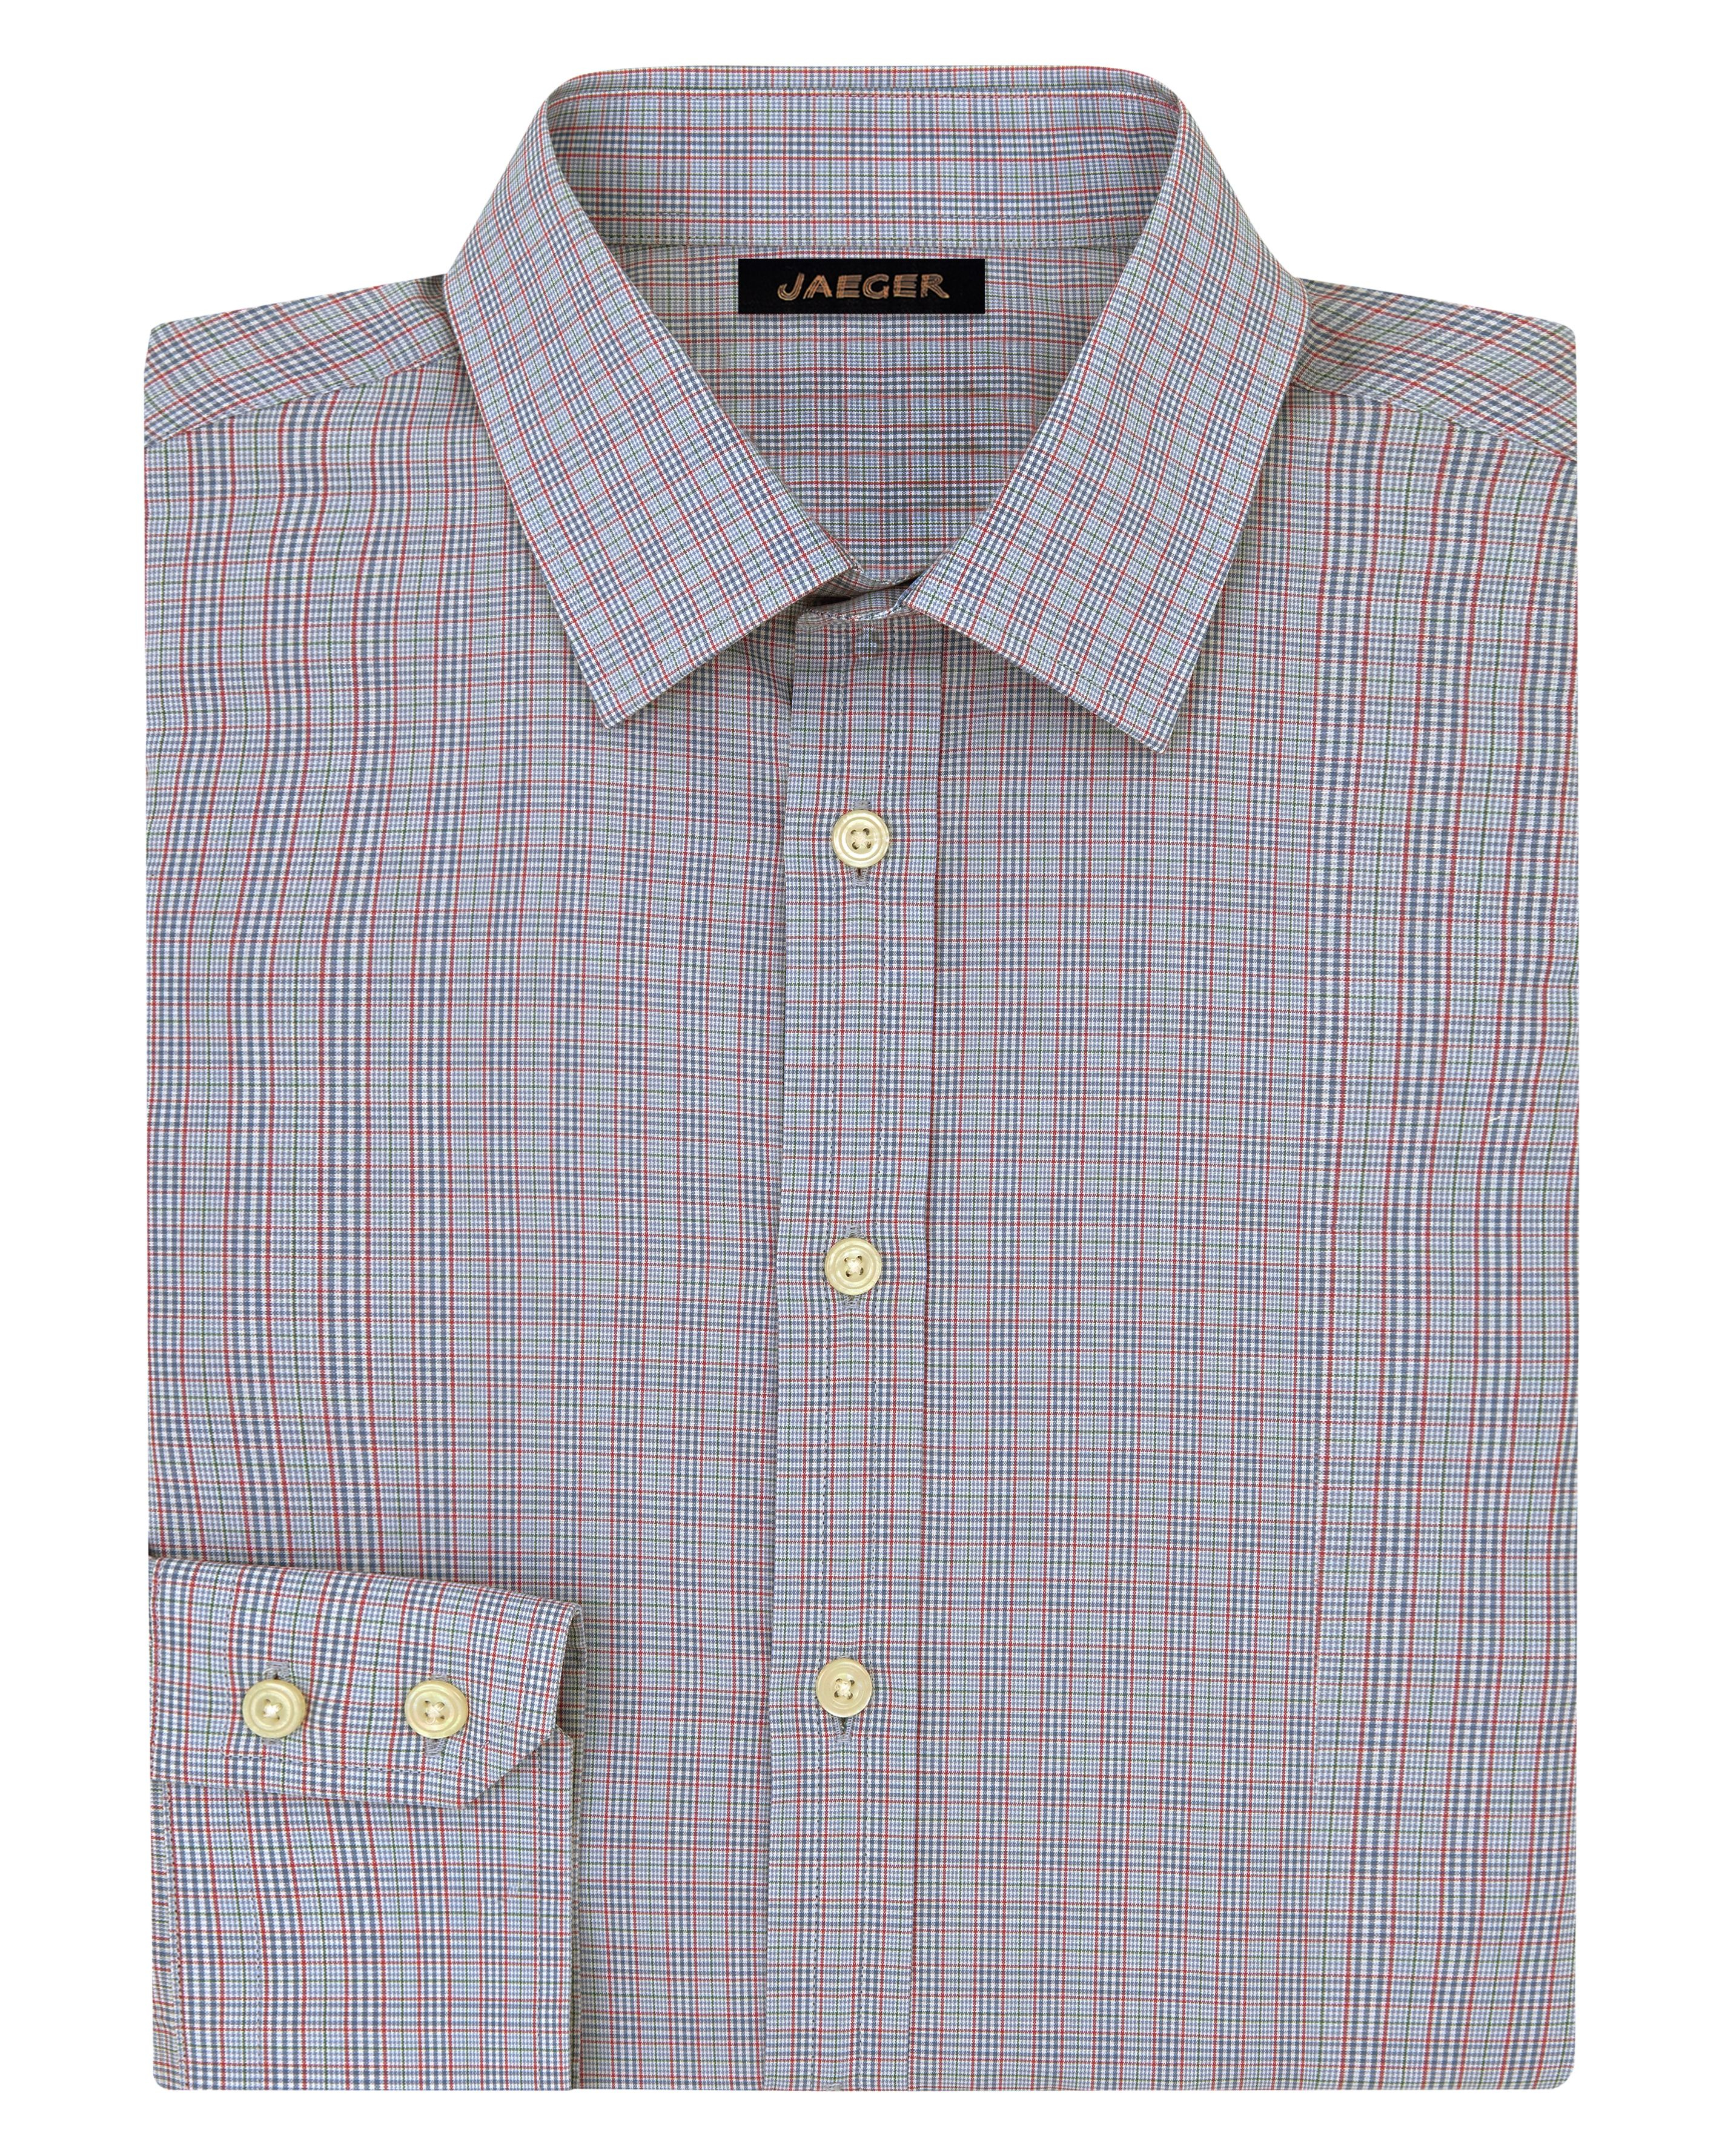 Jaeger Micro Check Classic Shirt In Pink For Men Lyst